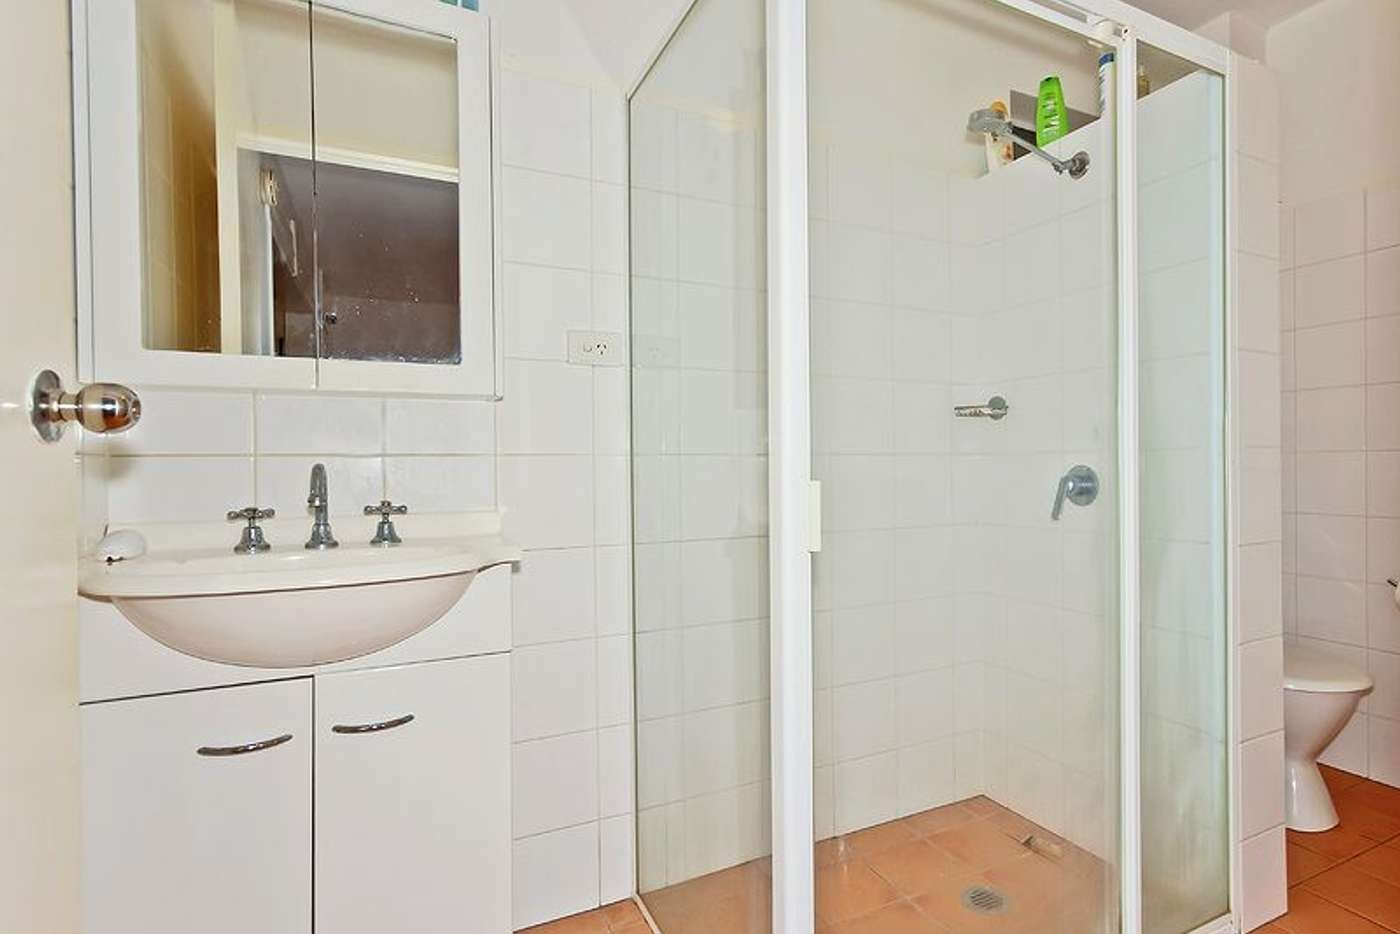 Seventh view of Homely unit listing, 2/21 Lapraik Street, Ascot QLD 4007